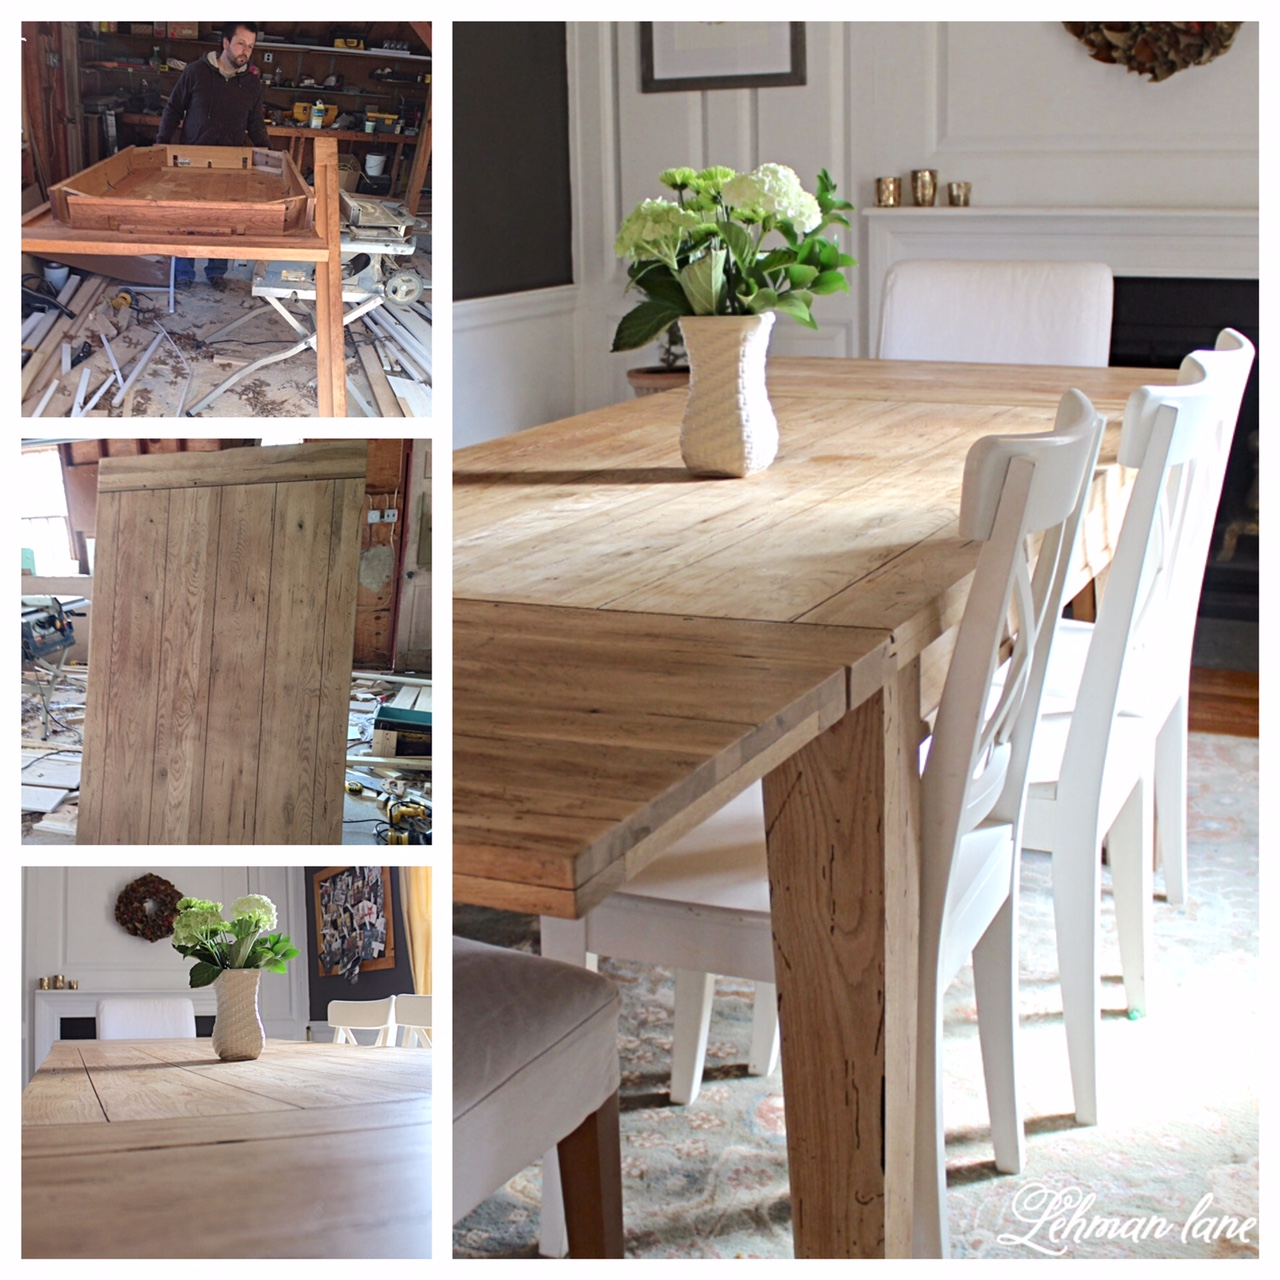 DIY Farmhouse TableRestoration Hardware Inspired Table